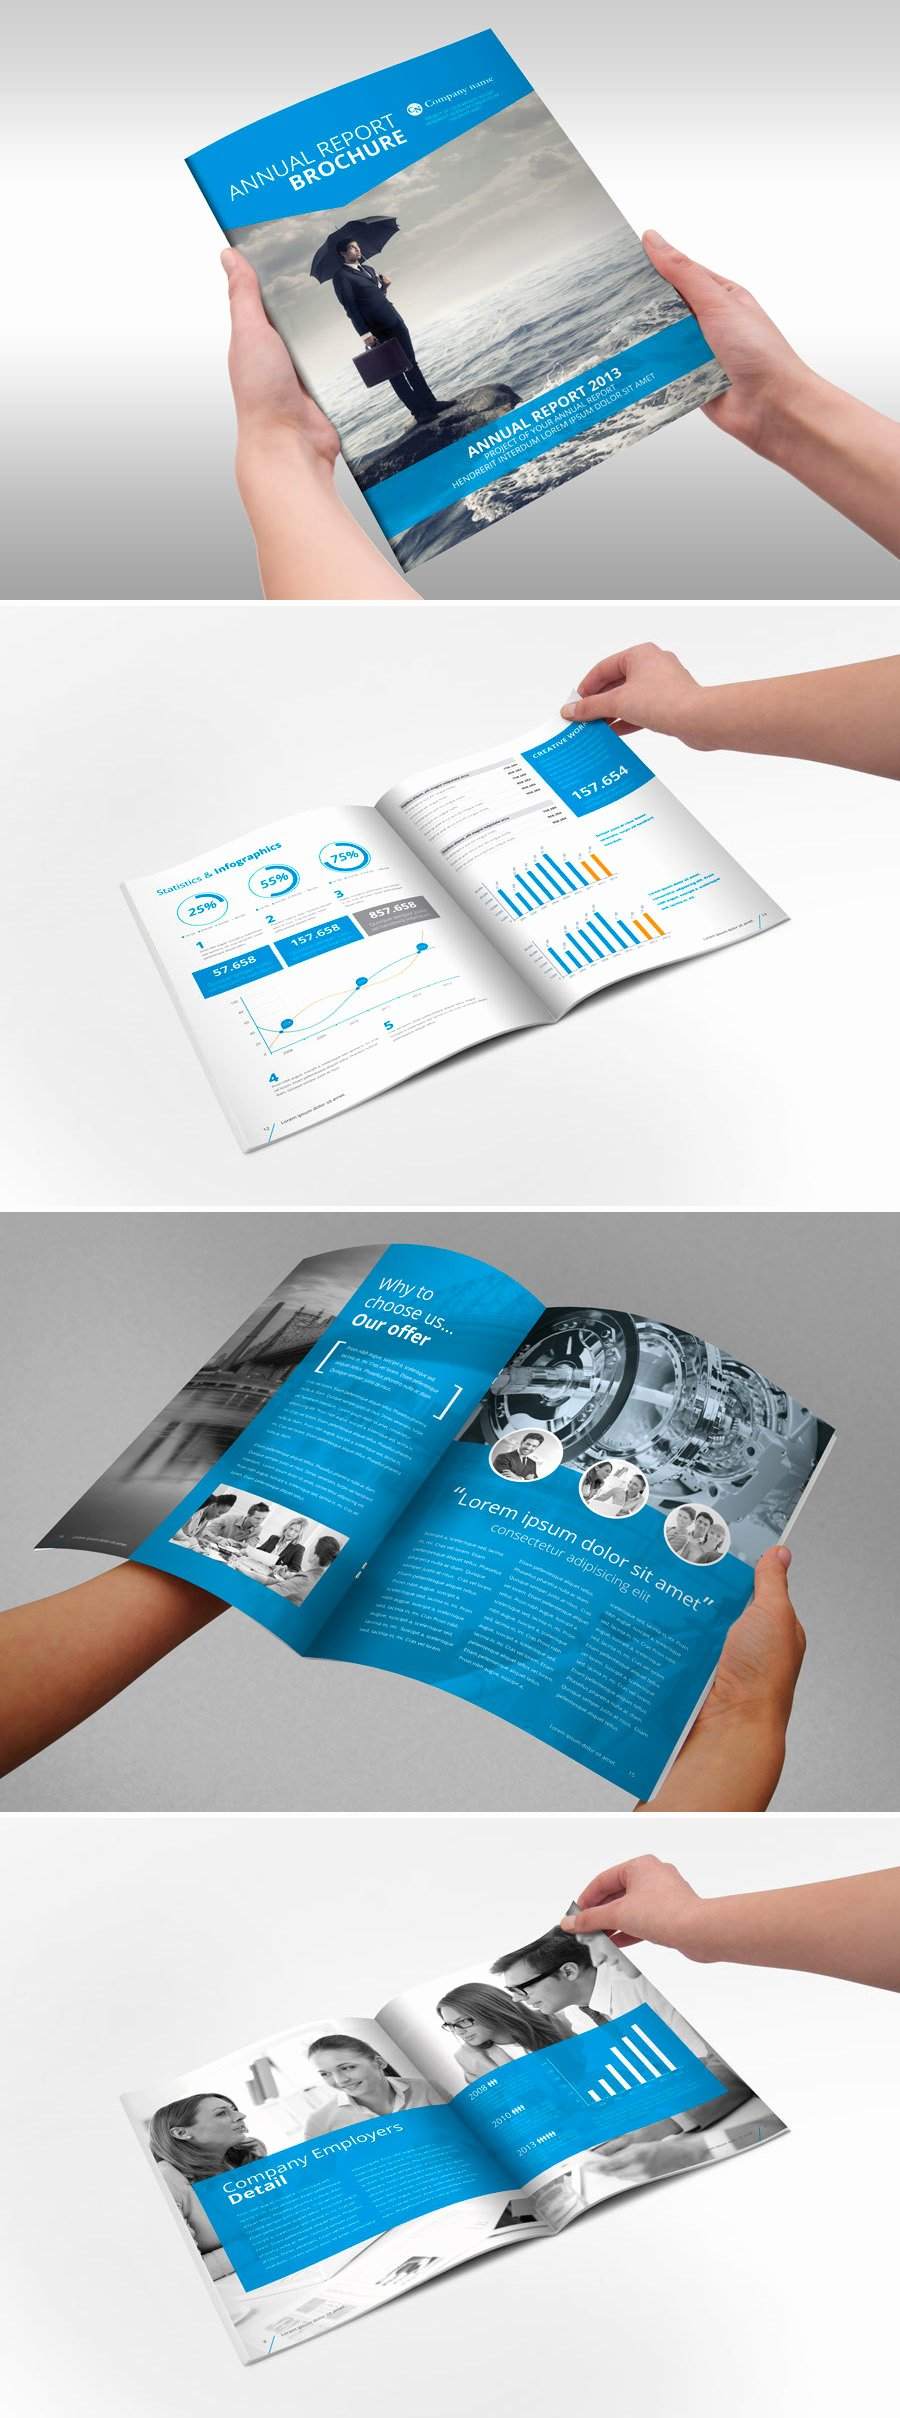 Annual Financial Report Template Elegant A Showcase Of Annual Report Brochure Designs to Check Out